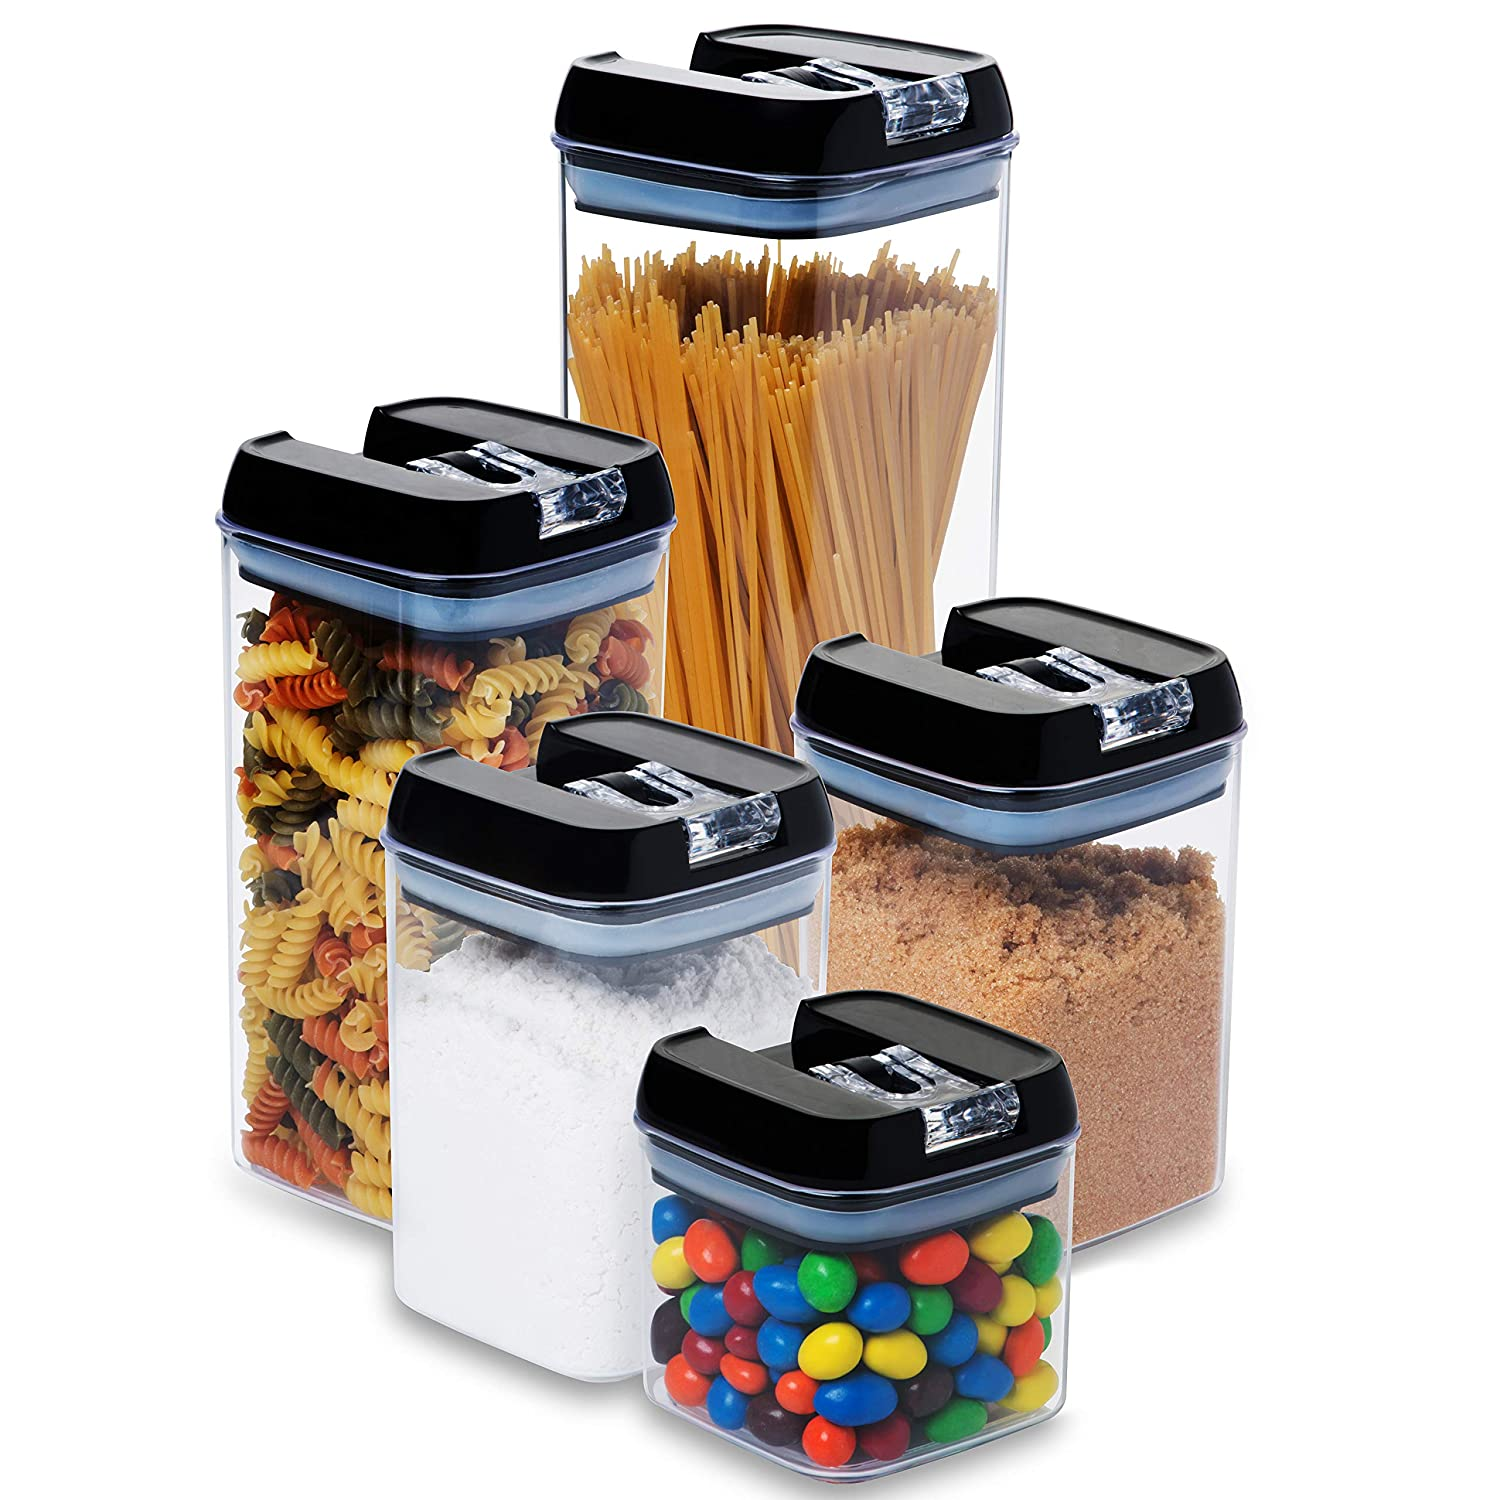 3 pc. Set Clear Food Containers w Airtight Lids Canisters for Kitchen and Pantry Storages - Storage for Cereal, Flour, Cooking - BPA-Free Plastic Guru Products